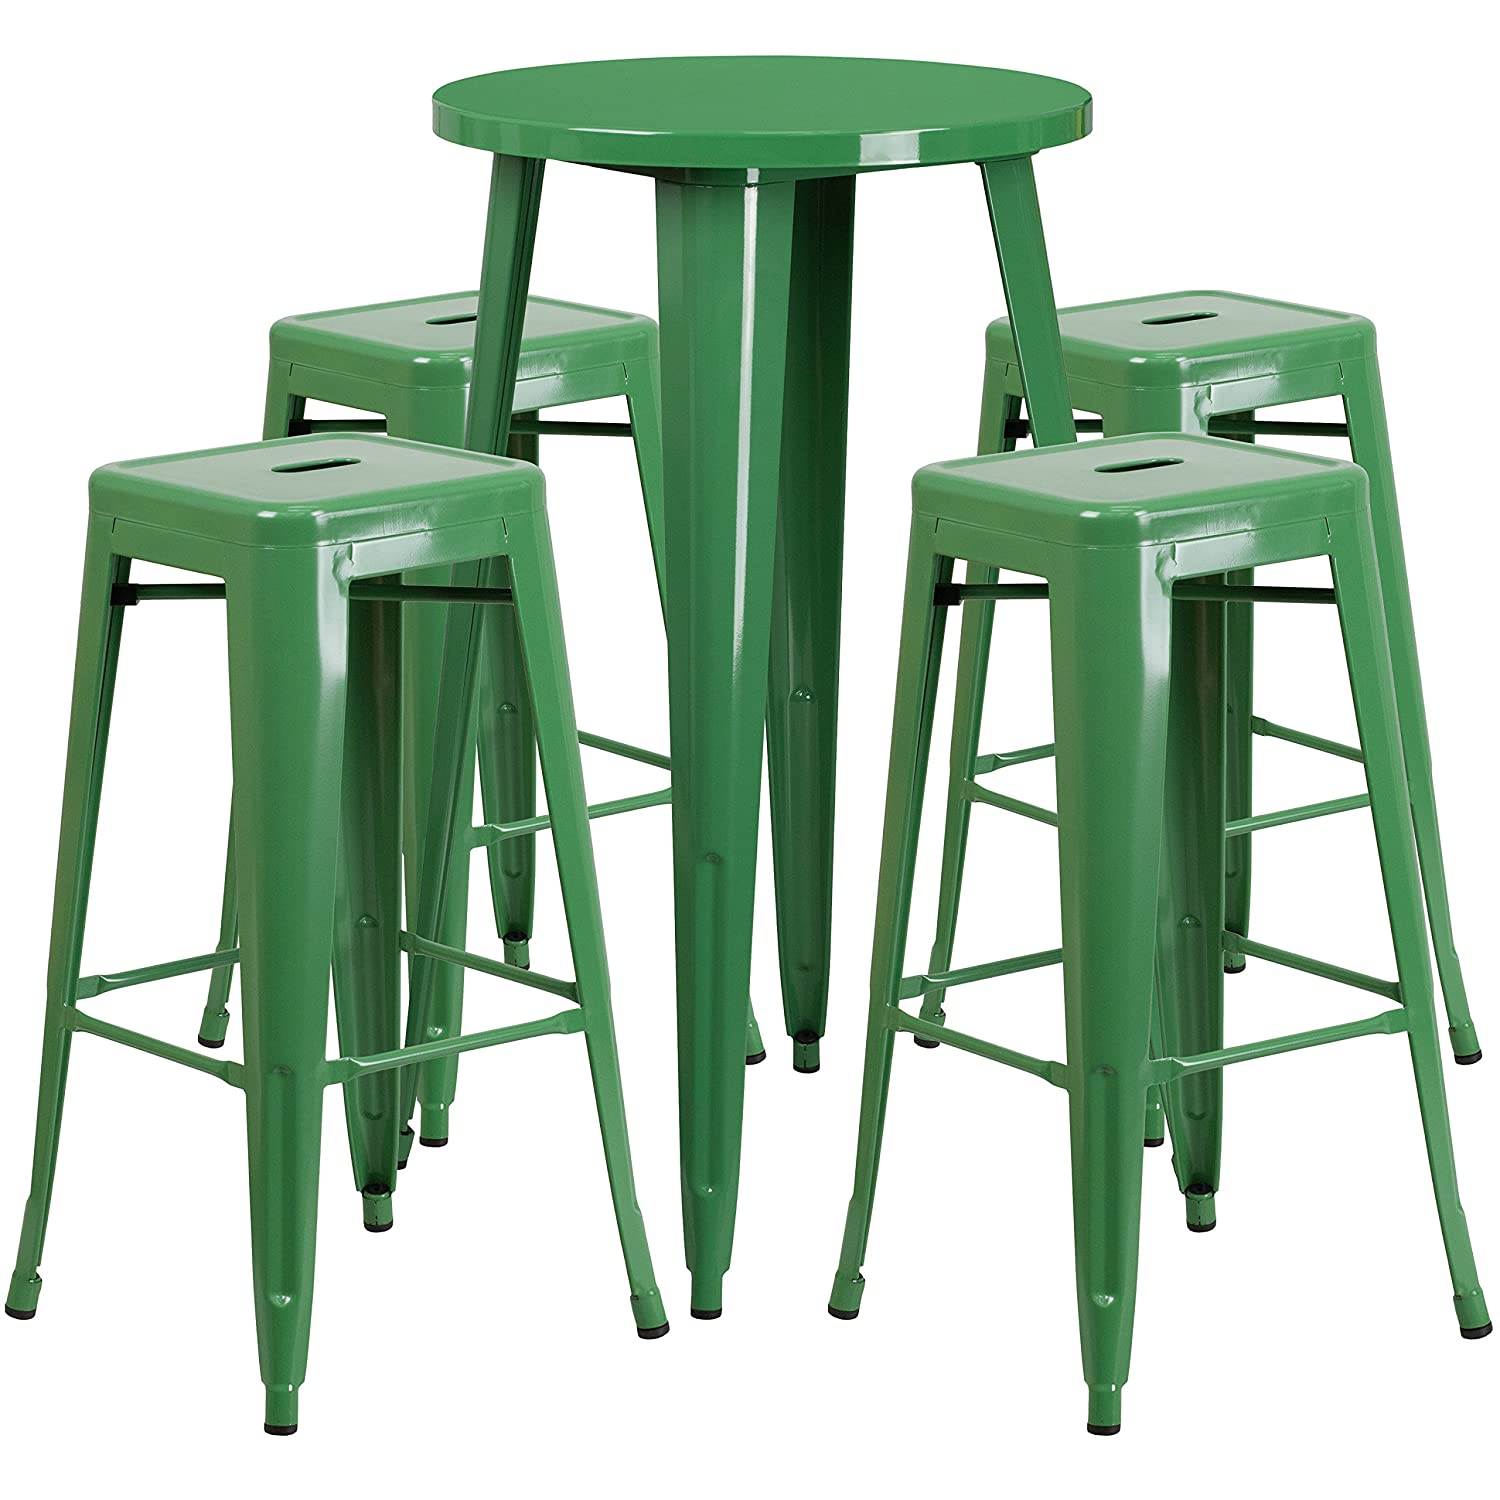 Amazon com flash furniture 24 round green metal indoor outdoor bar table set with 4 square seat backless stools kitchen dining